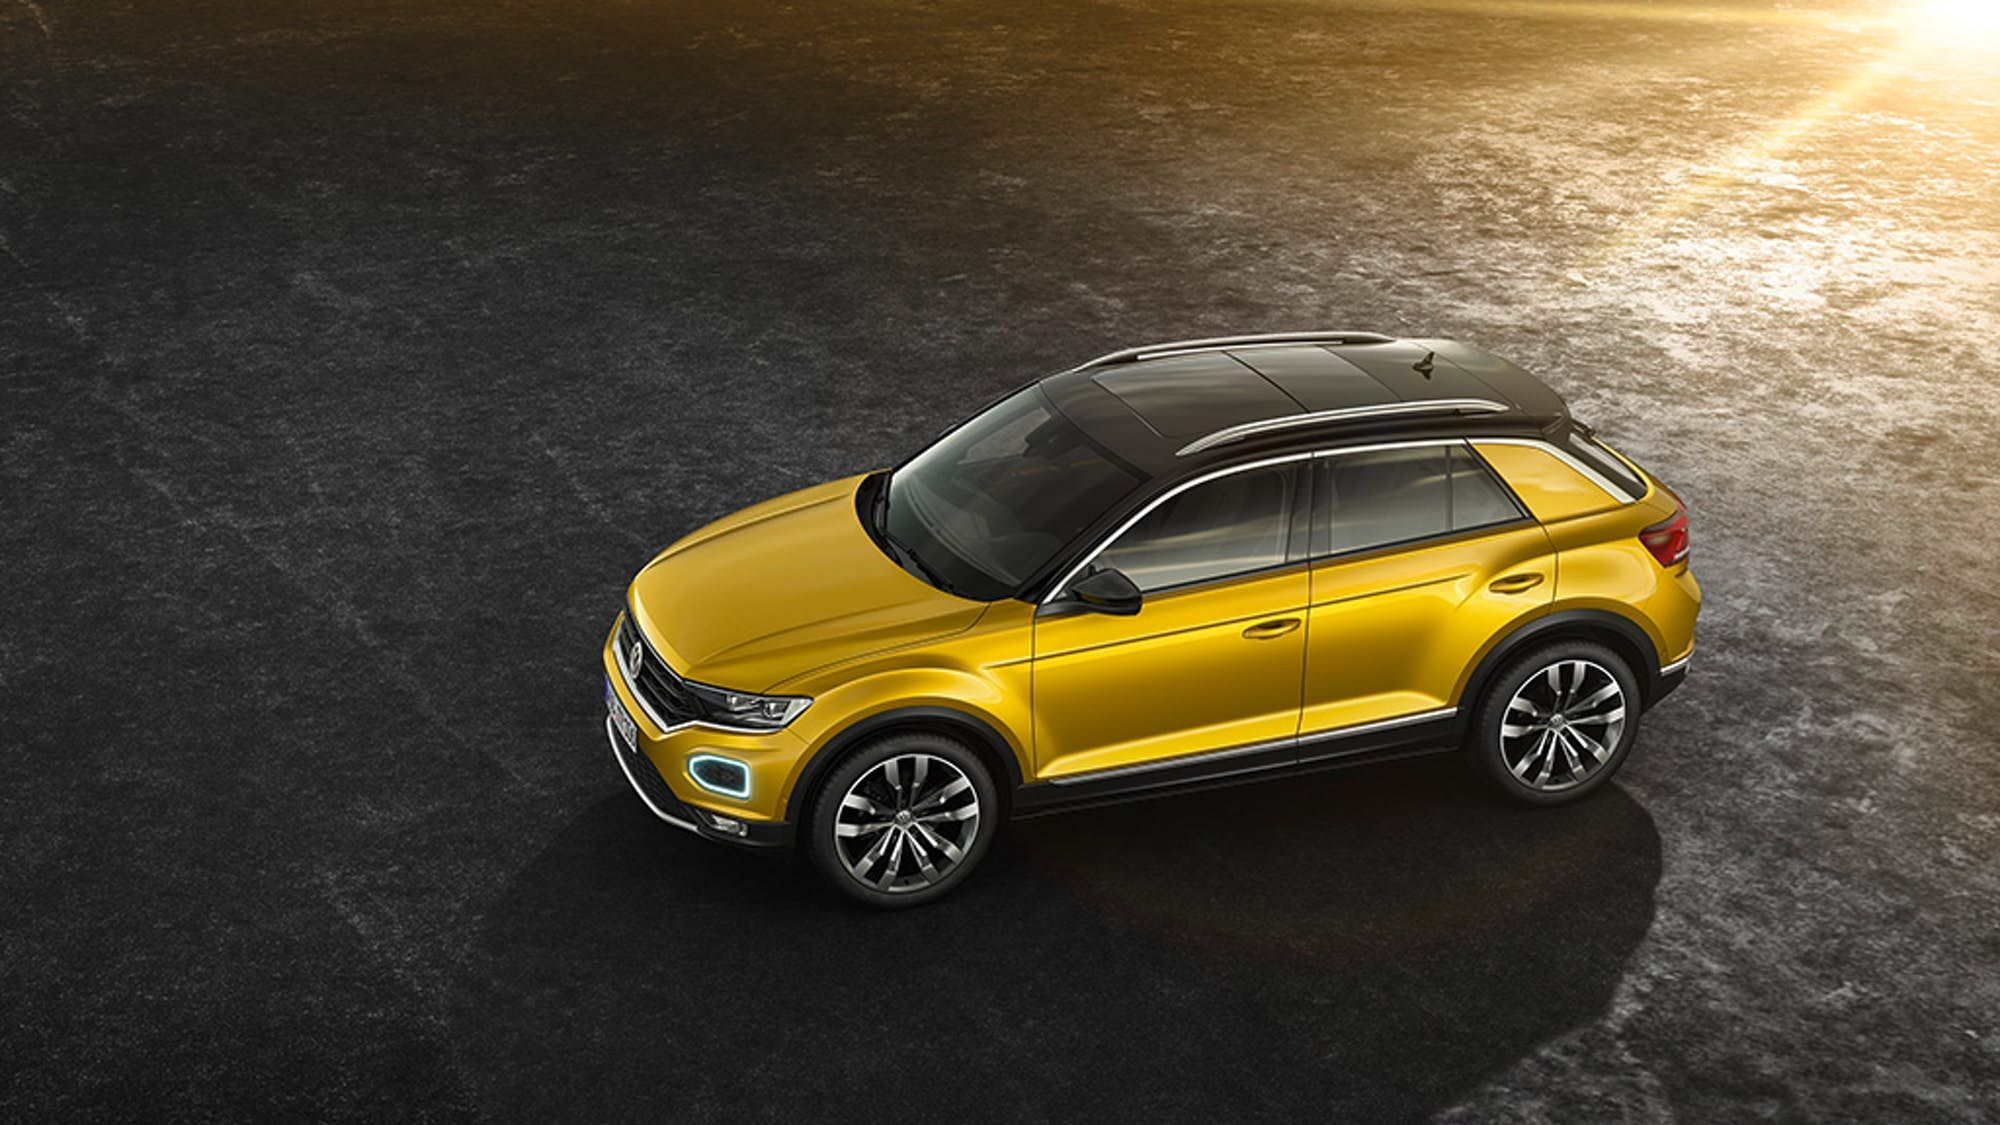 Volkswagen Shrinks And Sharpens Its Suv Lineup With All New T Roc Volkswagen Small Suv Suv